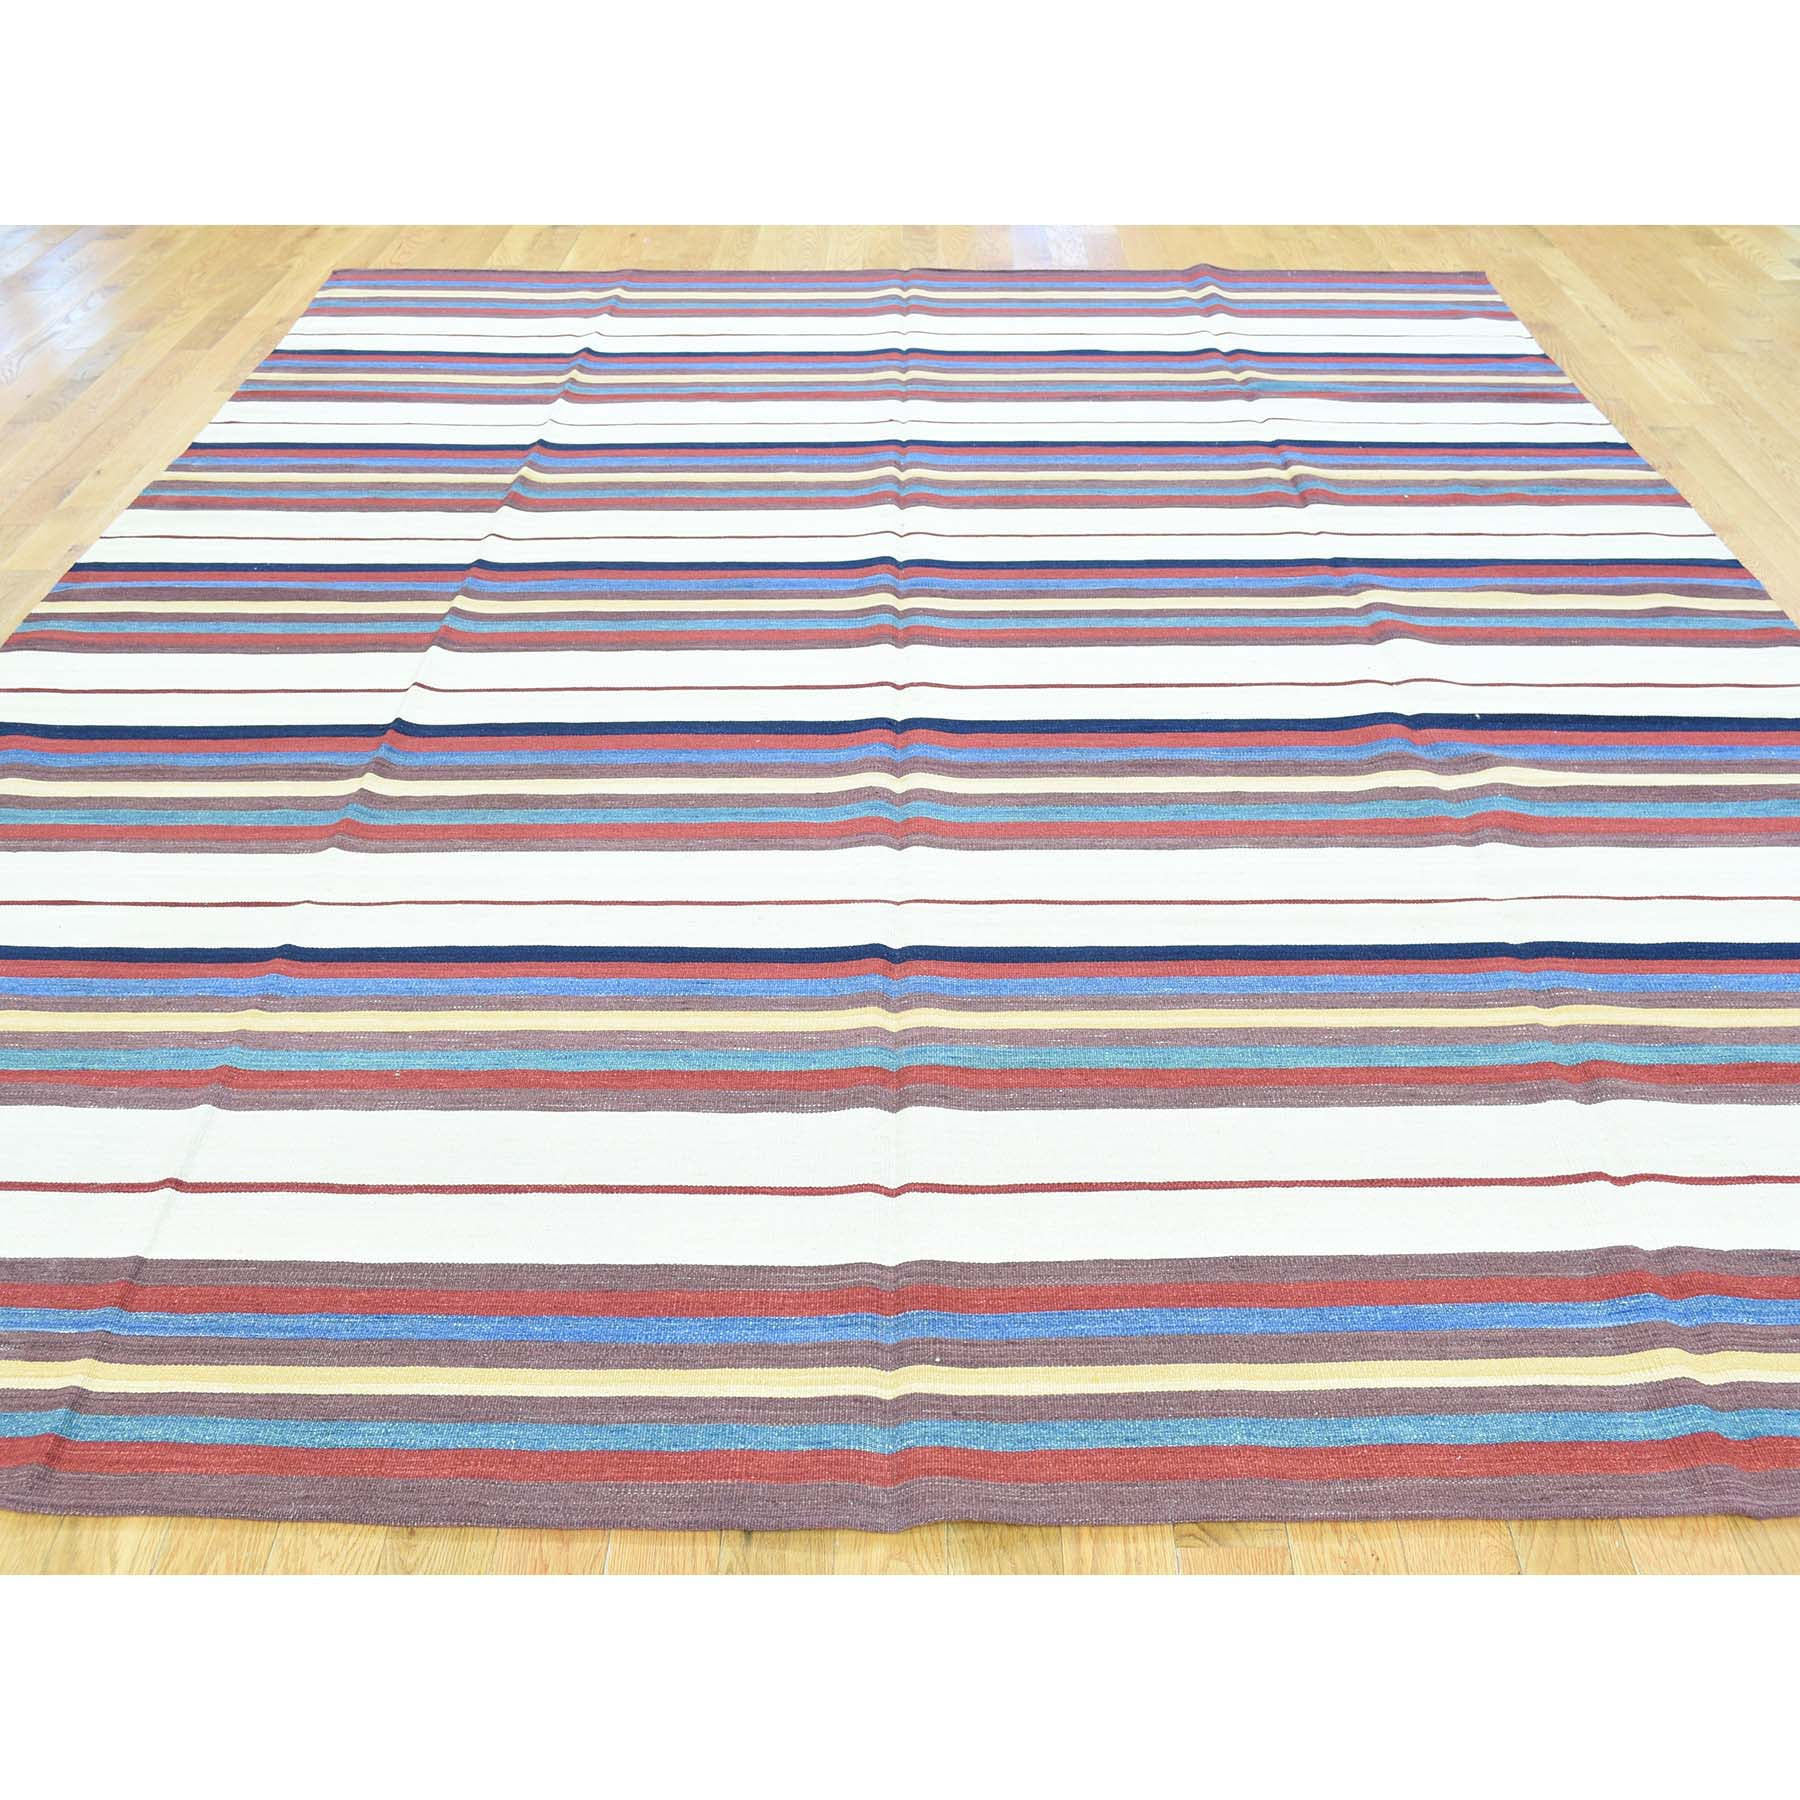 "Handmade Flat Weave Rectangle Rug > Design# SH32254 > Size: 8'-3"" x 10'-4"" [ONLINE ONLY]"